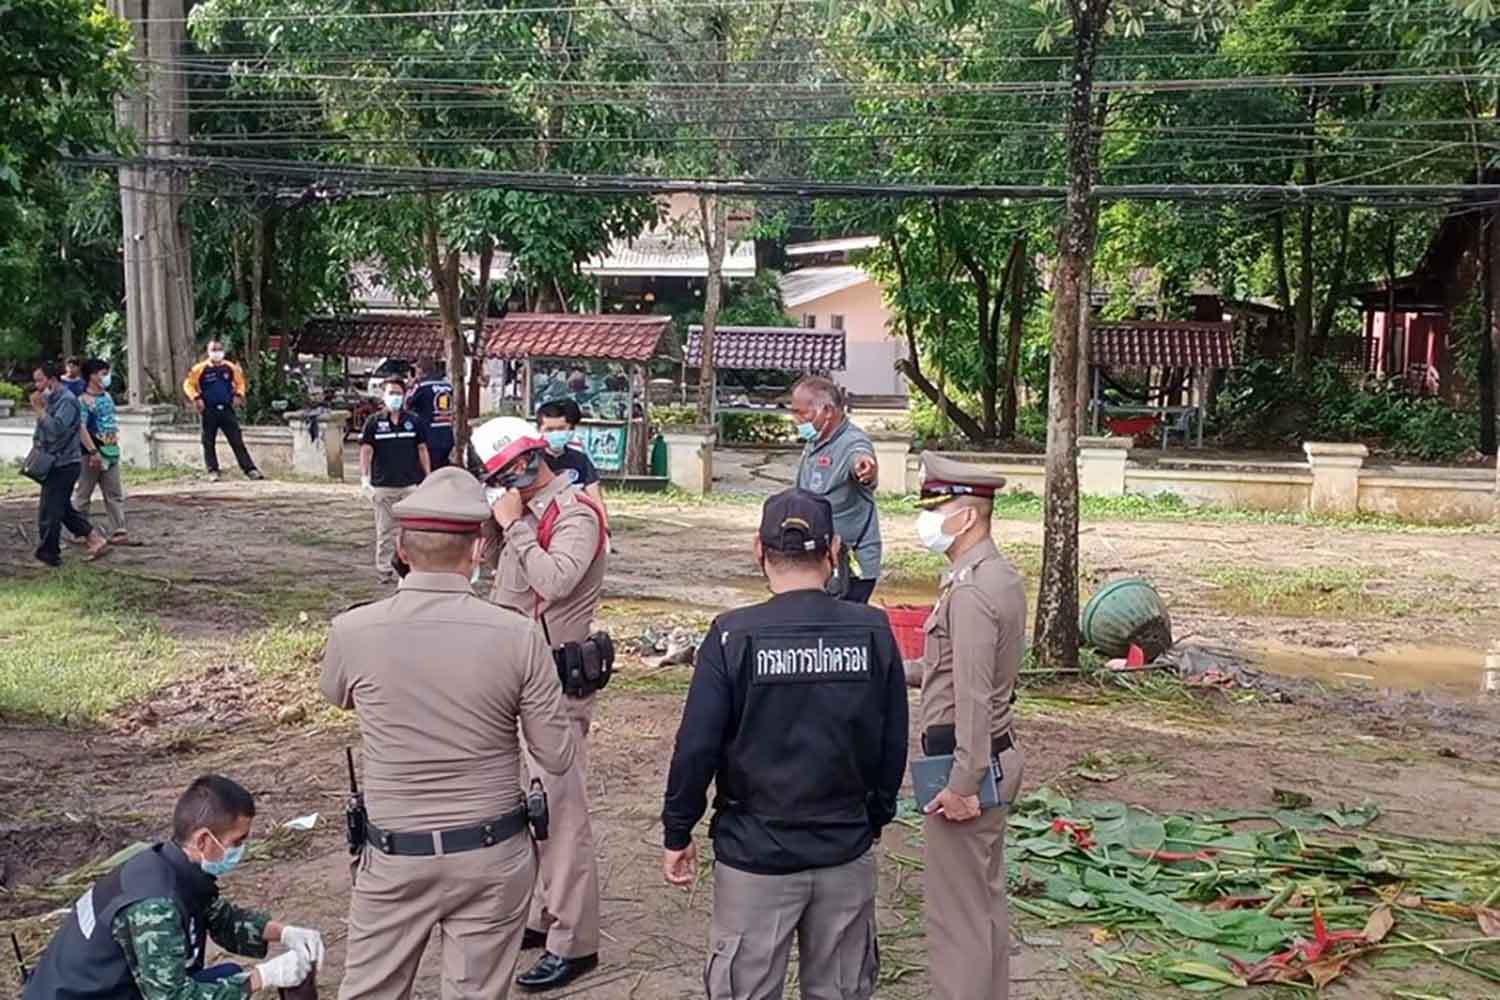 Officials inspect the death scene in front of the Jungle House Khaoyai resort near Thanarat Road in Pak Chong district, Nakhon Ratchasima, on Thursday. (Photo: Prasit Tangprasert)